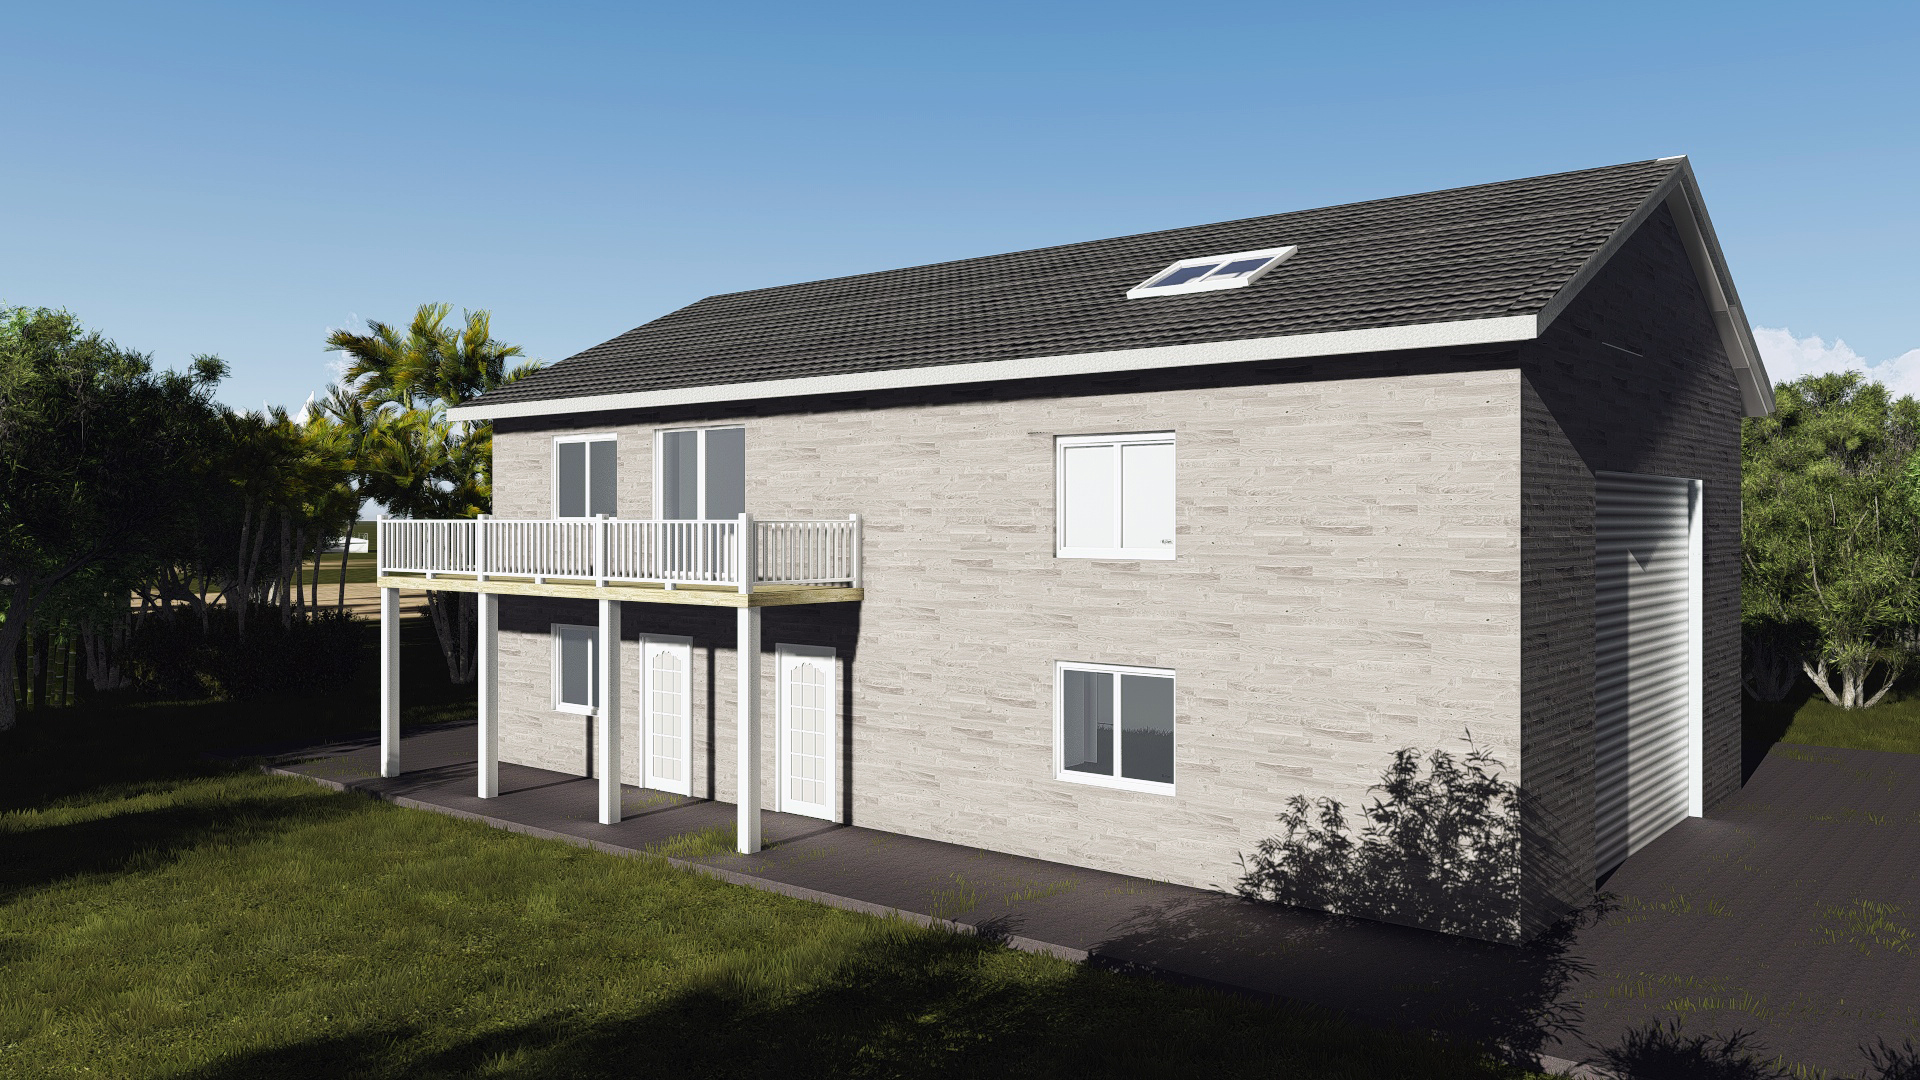 Special offers easybuildingplans Two story garage apartment